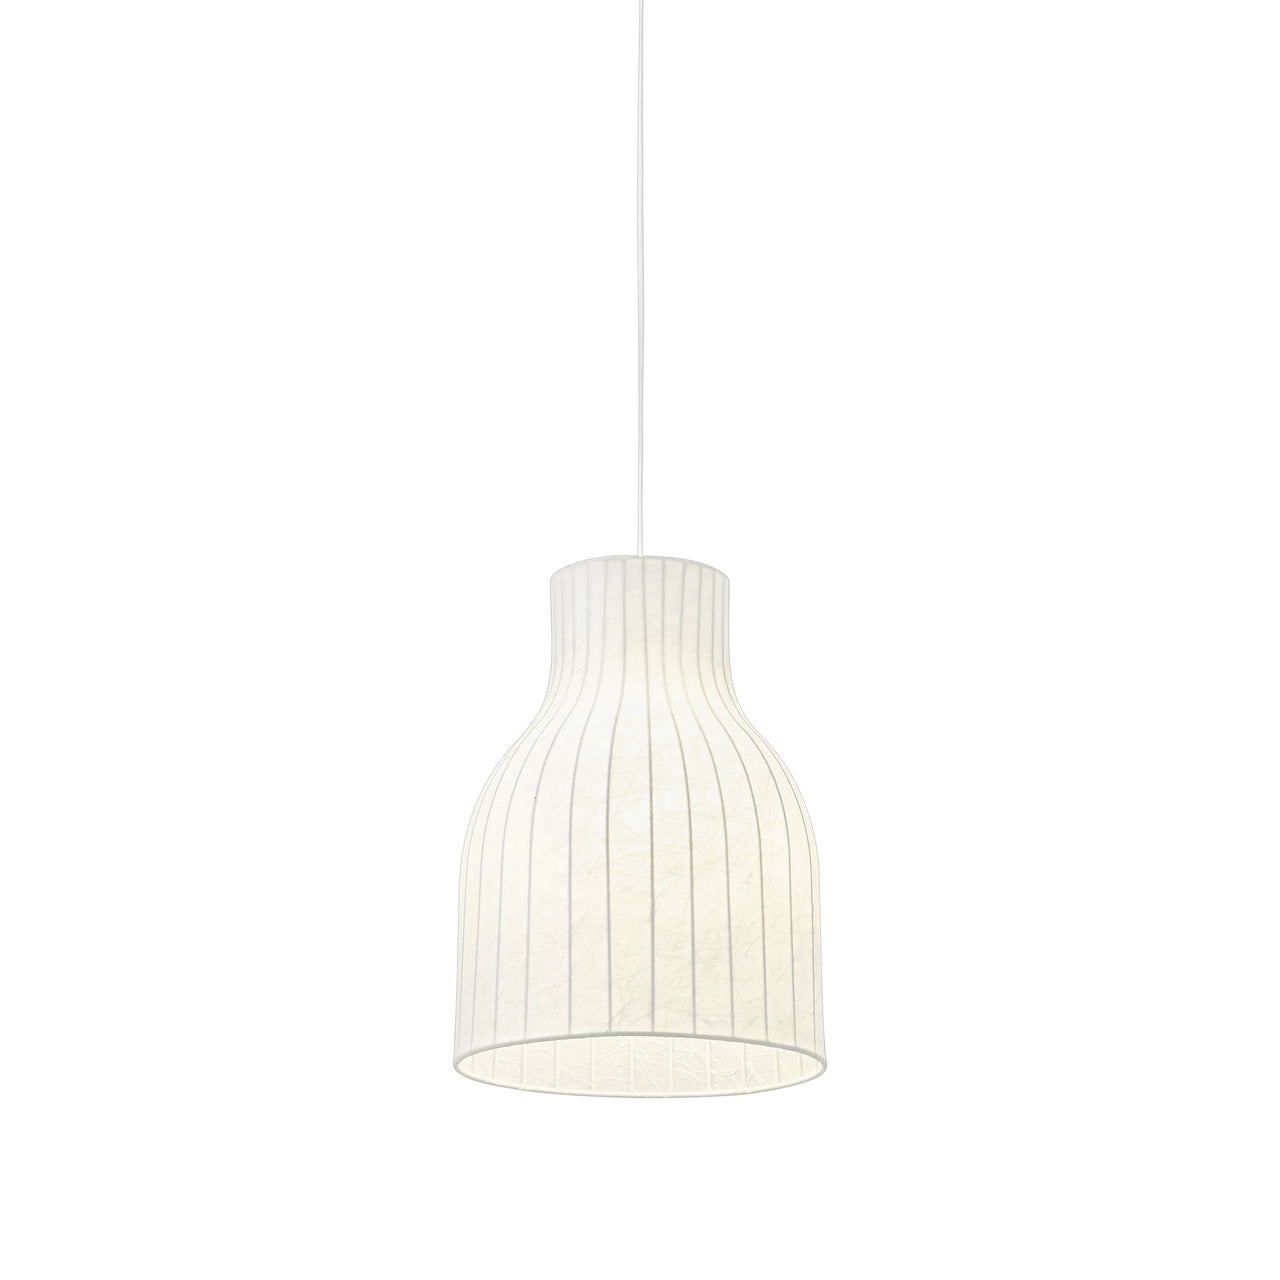 Strand Pendant Lamp: Open + Large 23.5